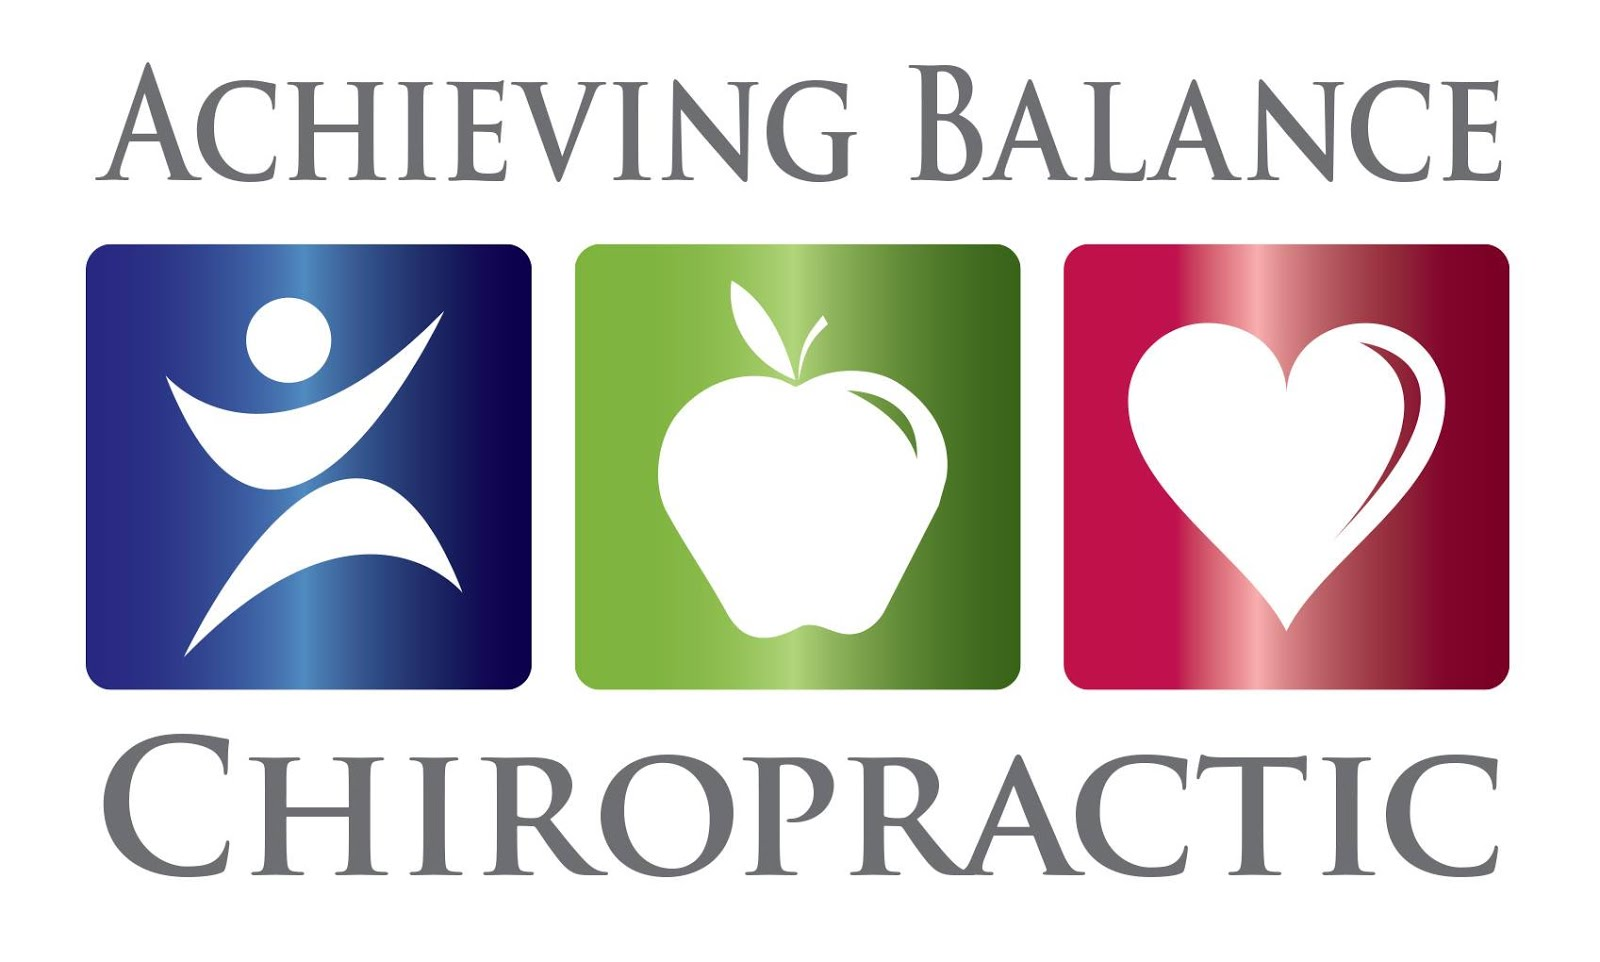 Achieving Balance Chiropractic